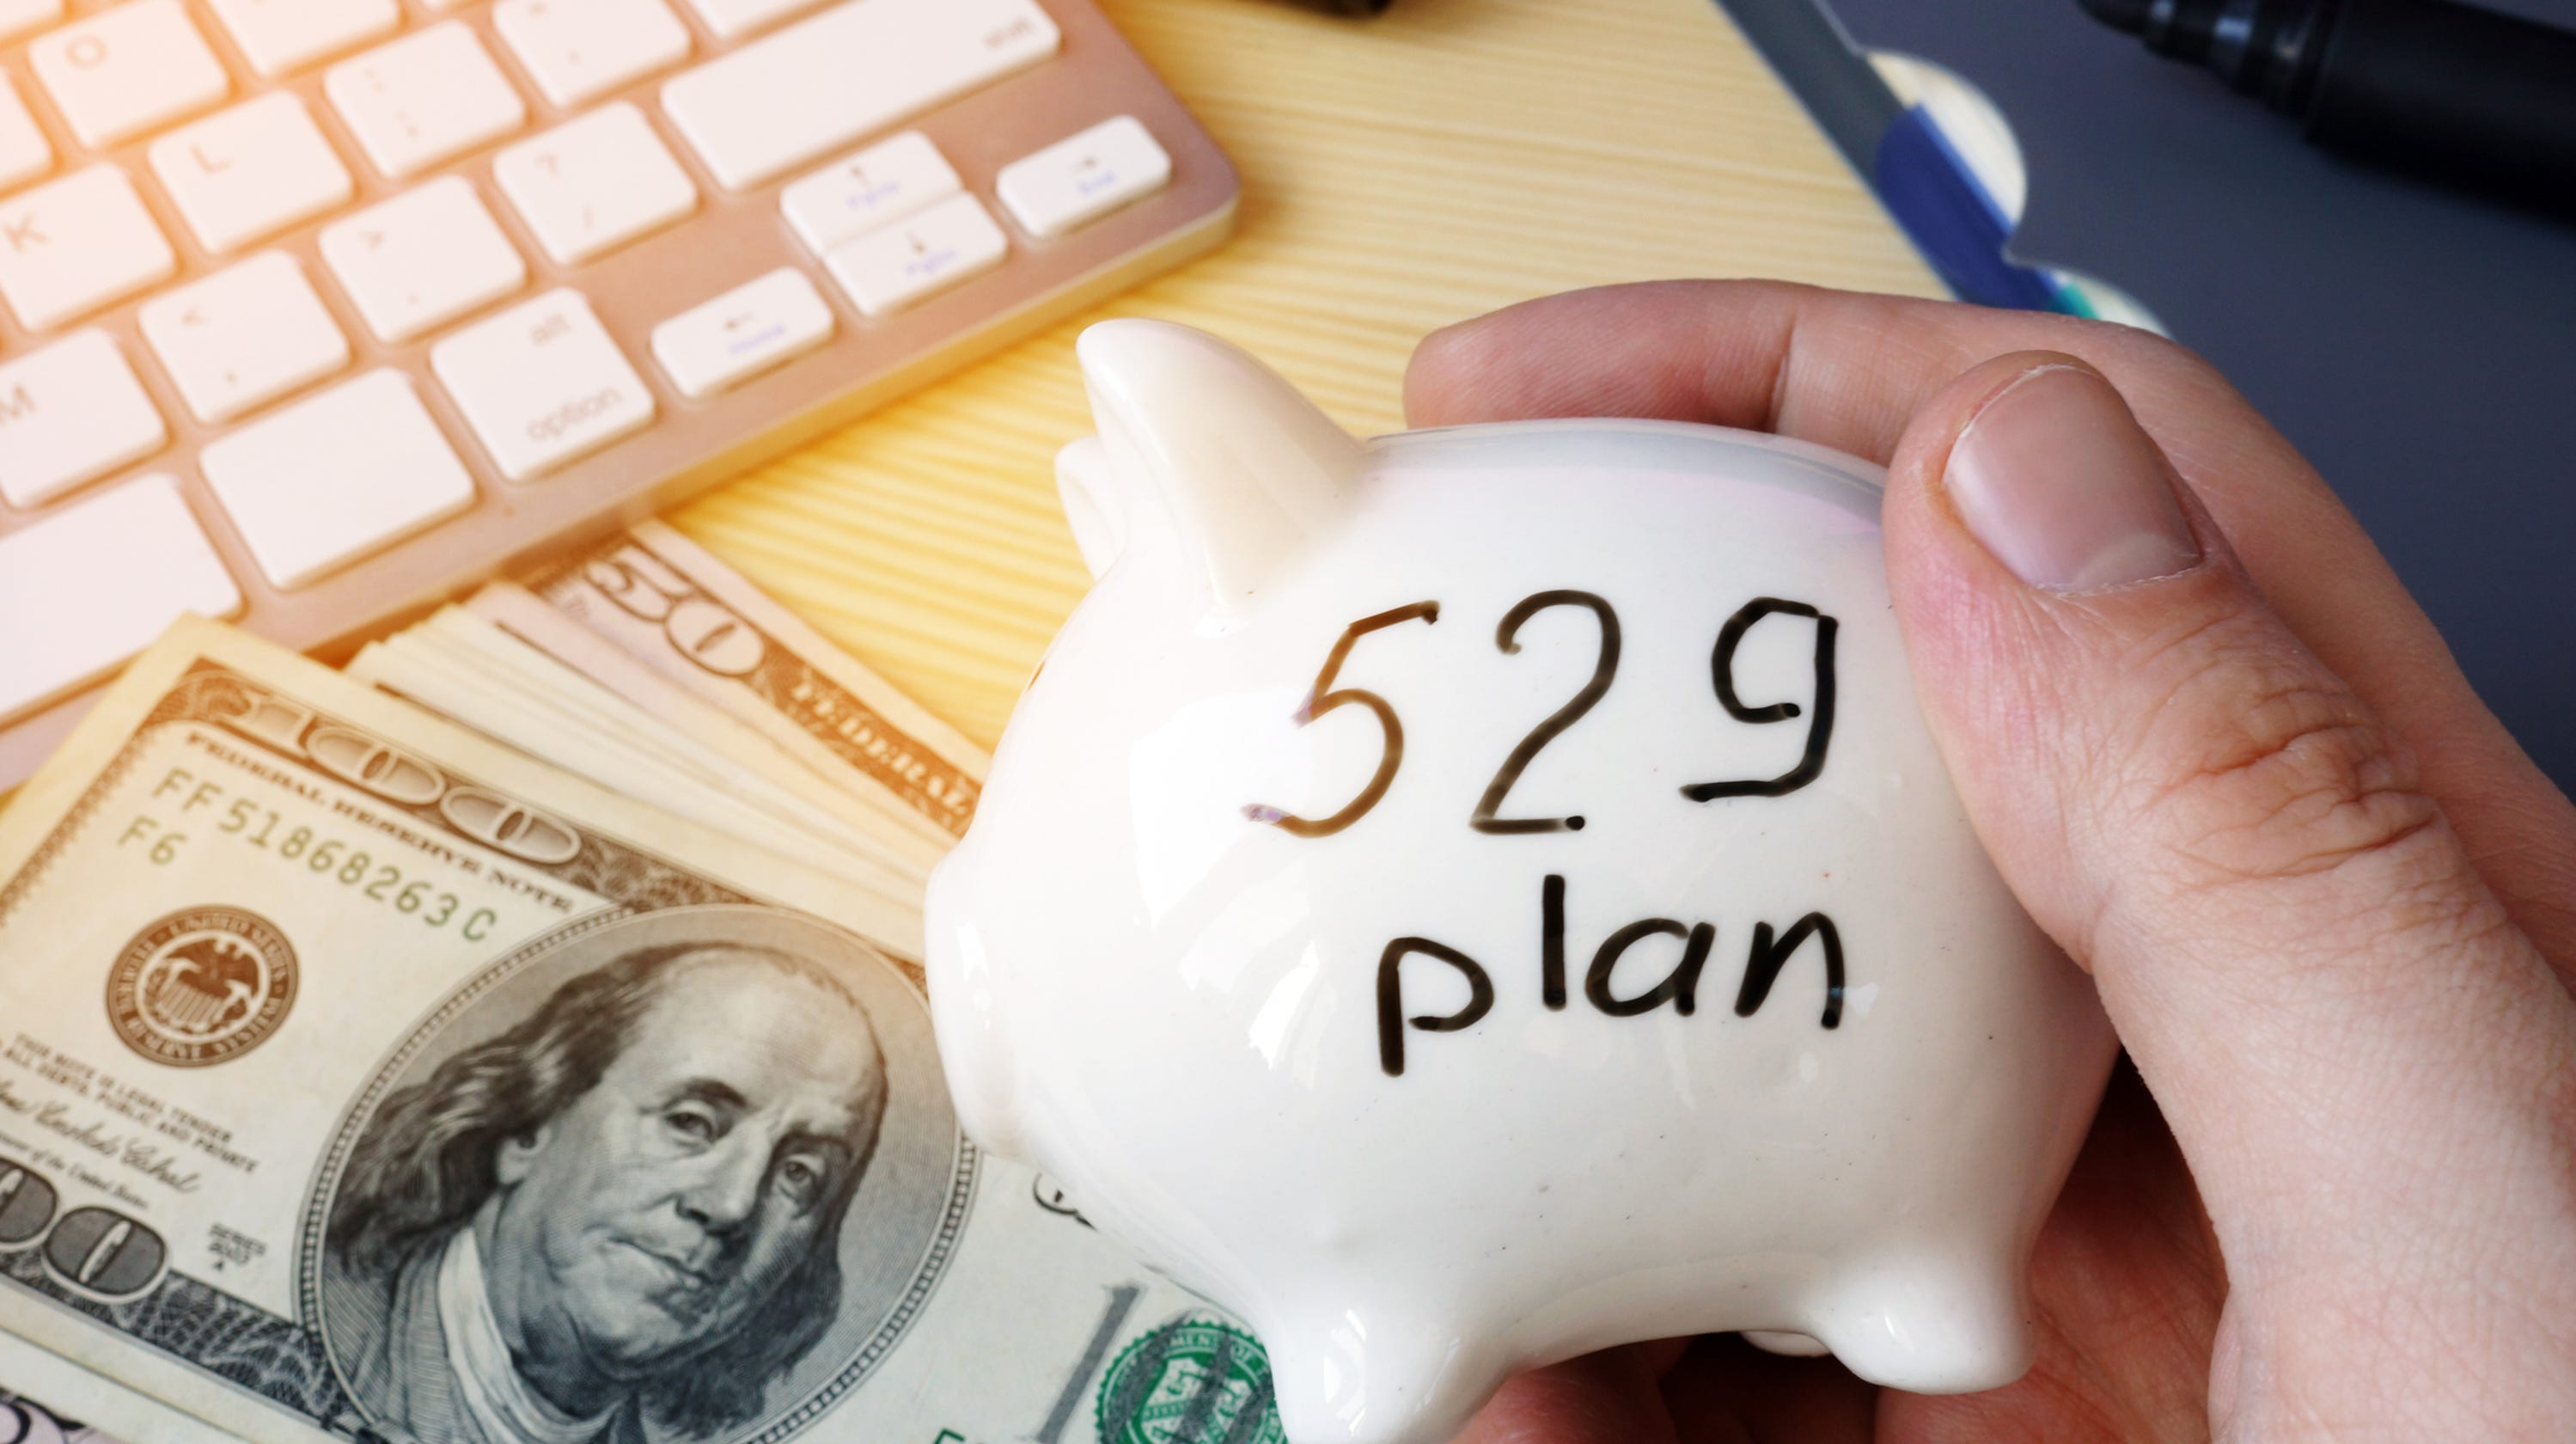 Answers to your 529 plan questions